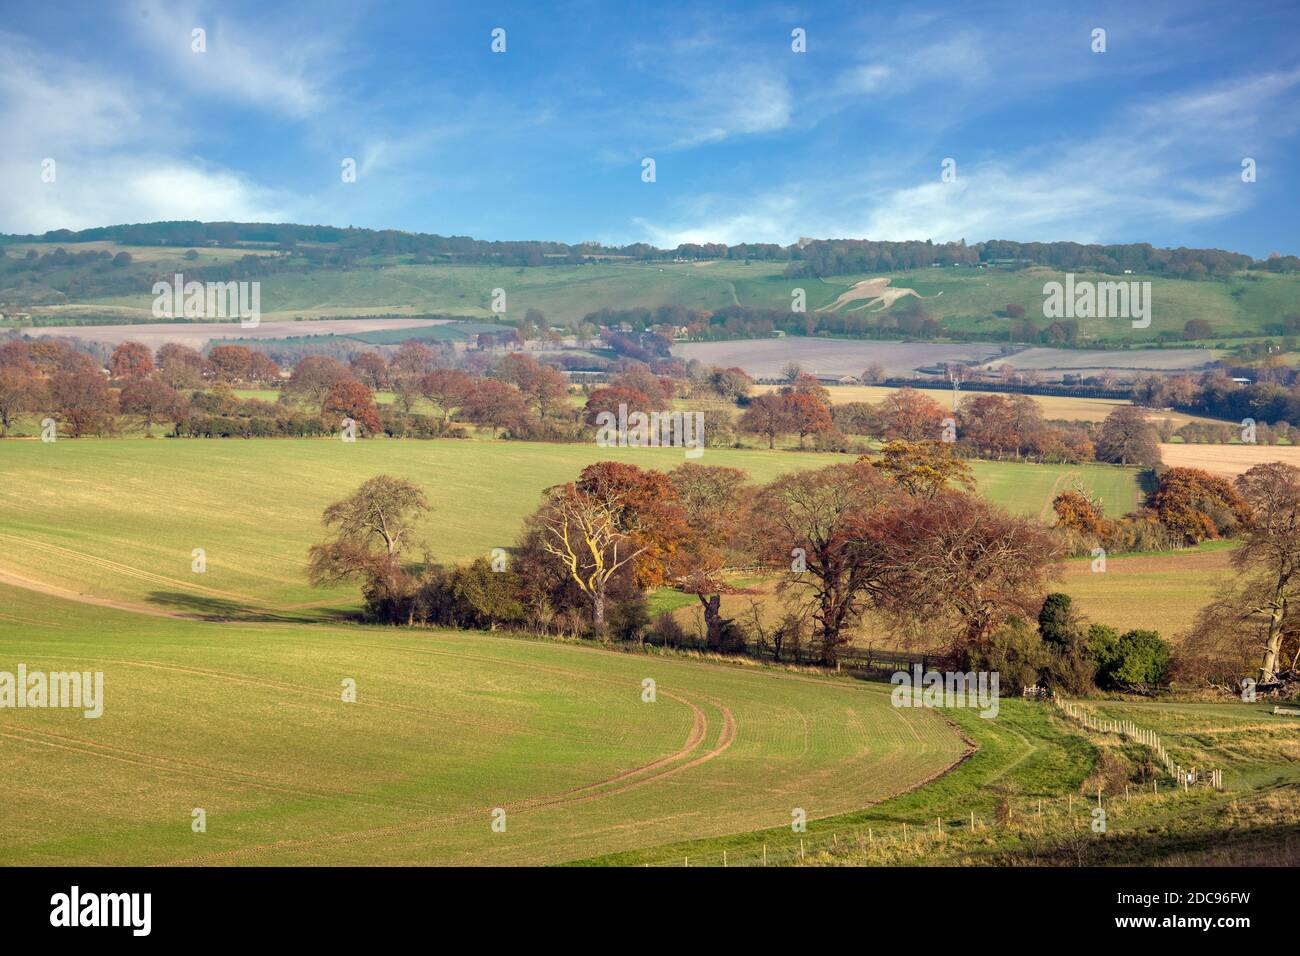 Countrysde Chiltern Hills Hertfordshire Angleterre Banque D'Images